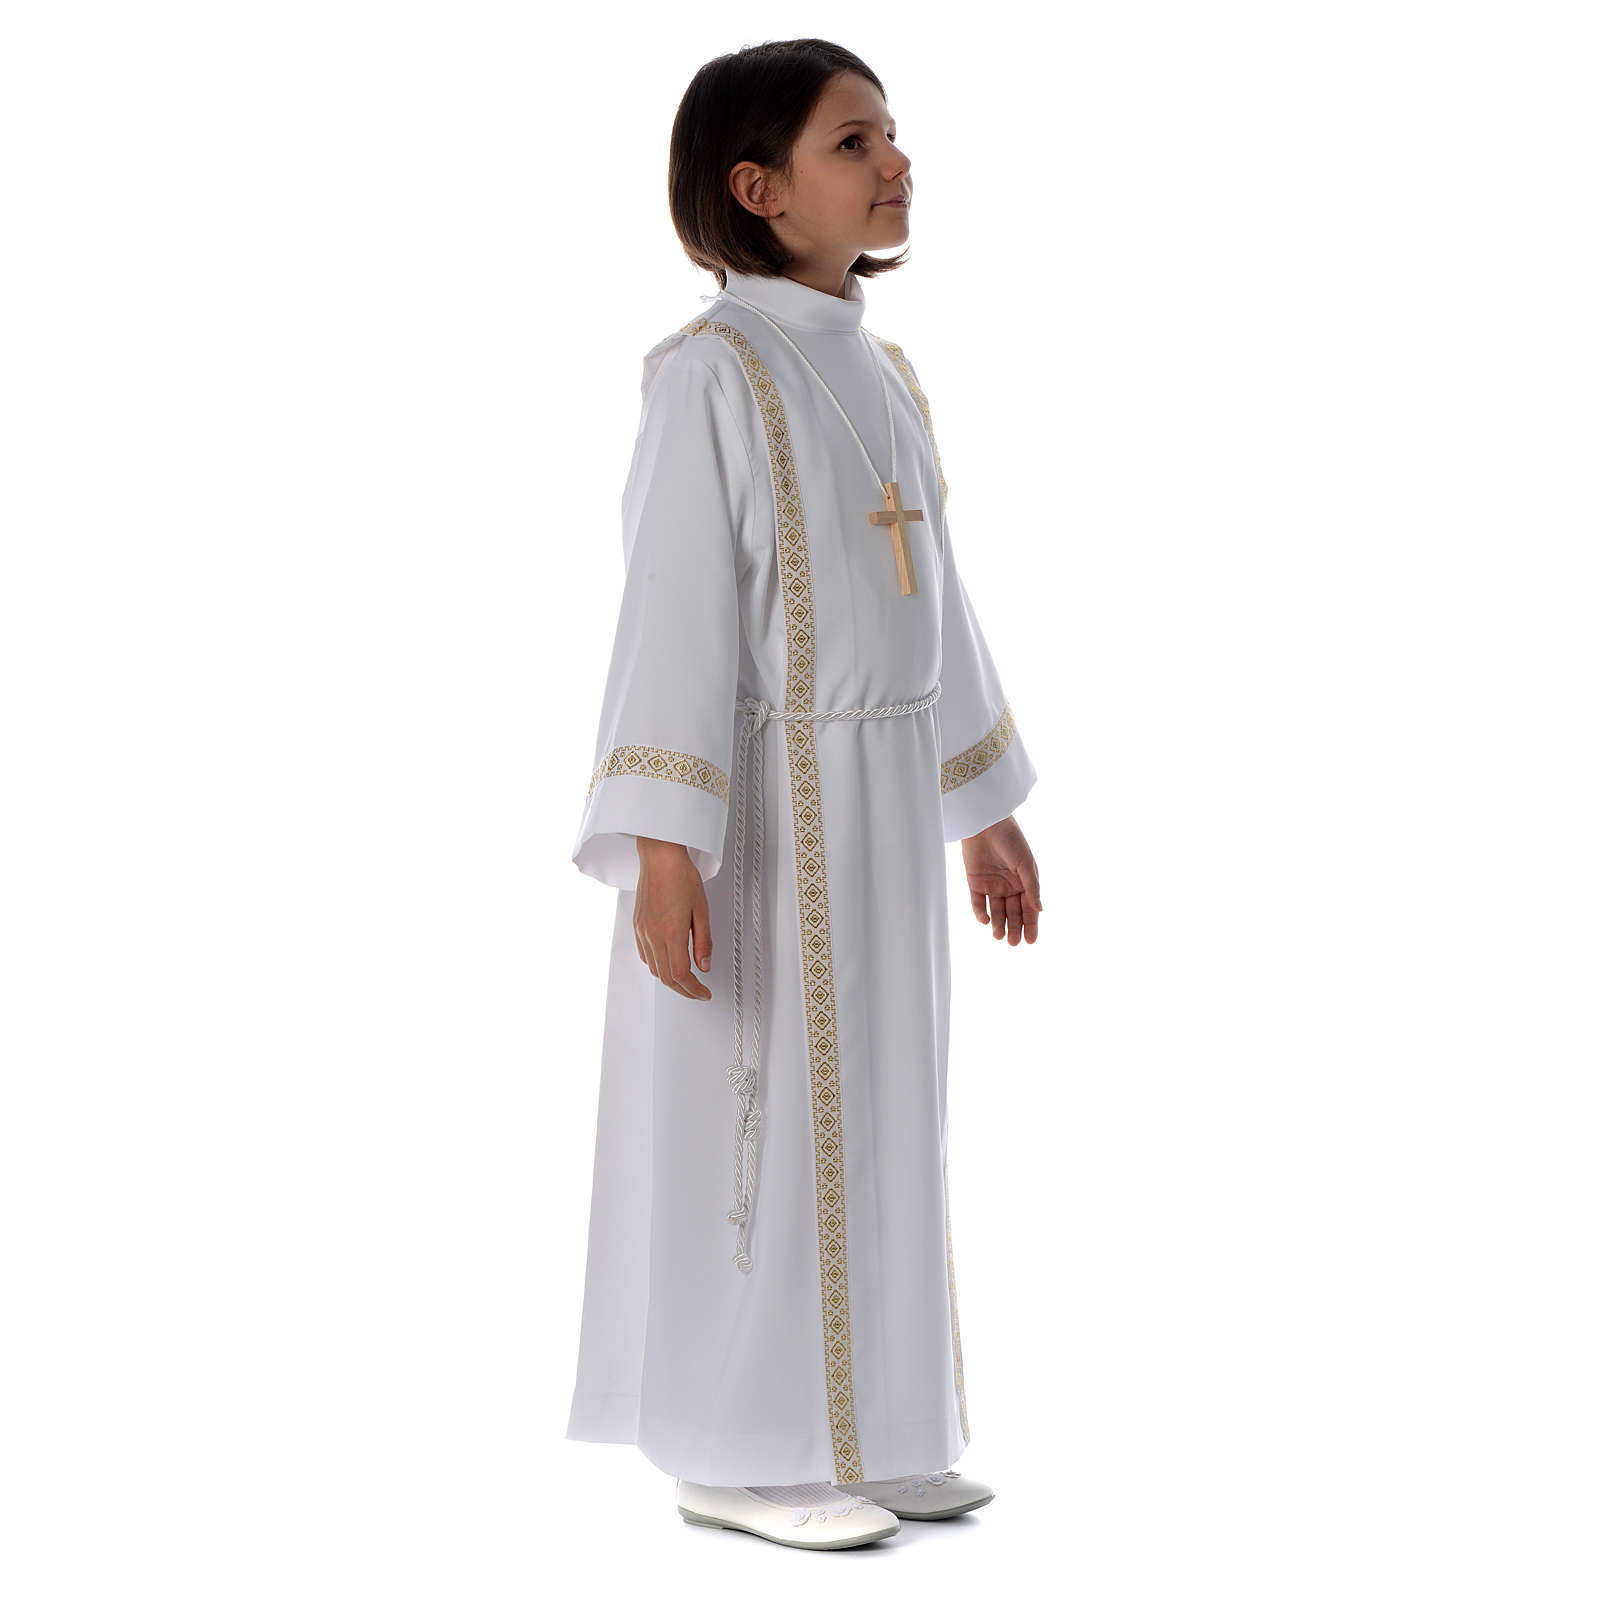 First Communion alb with pleats on back and front and braided border 4